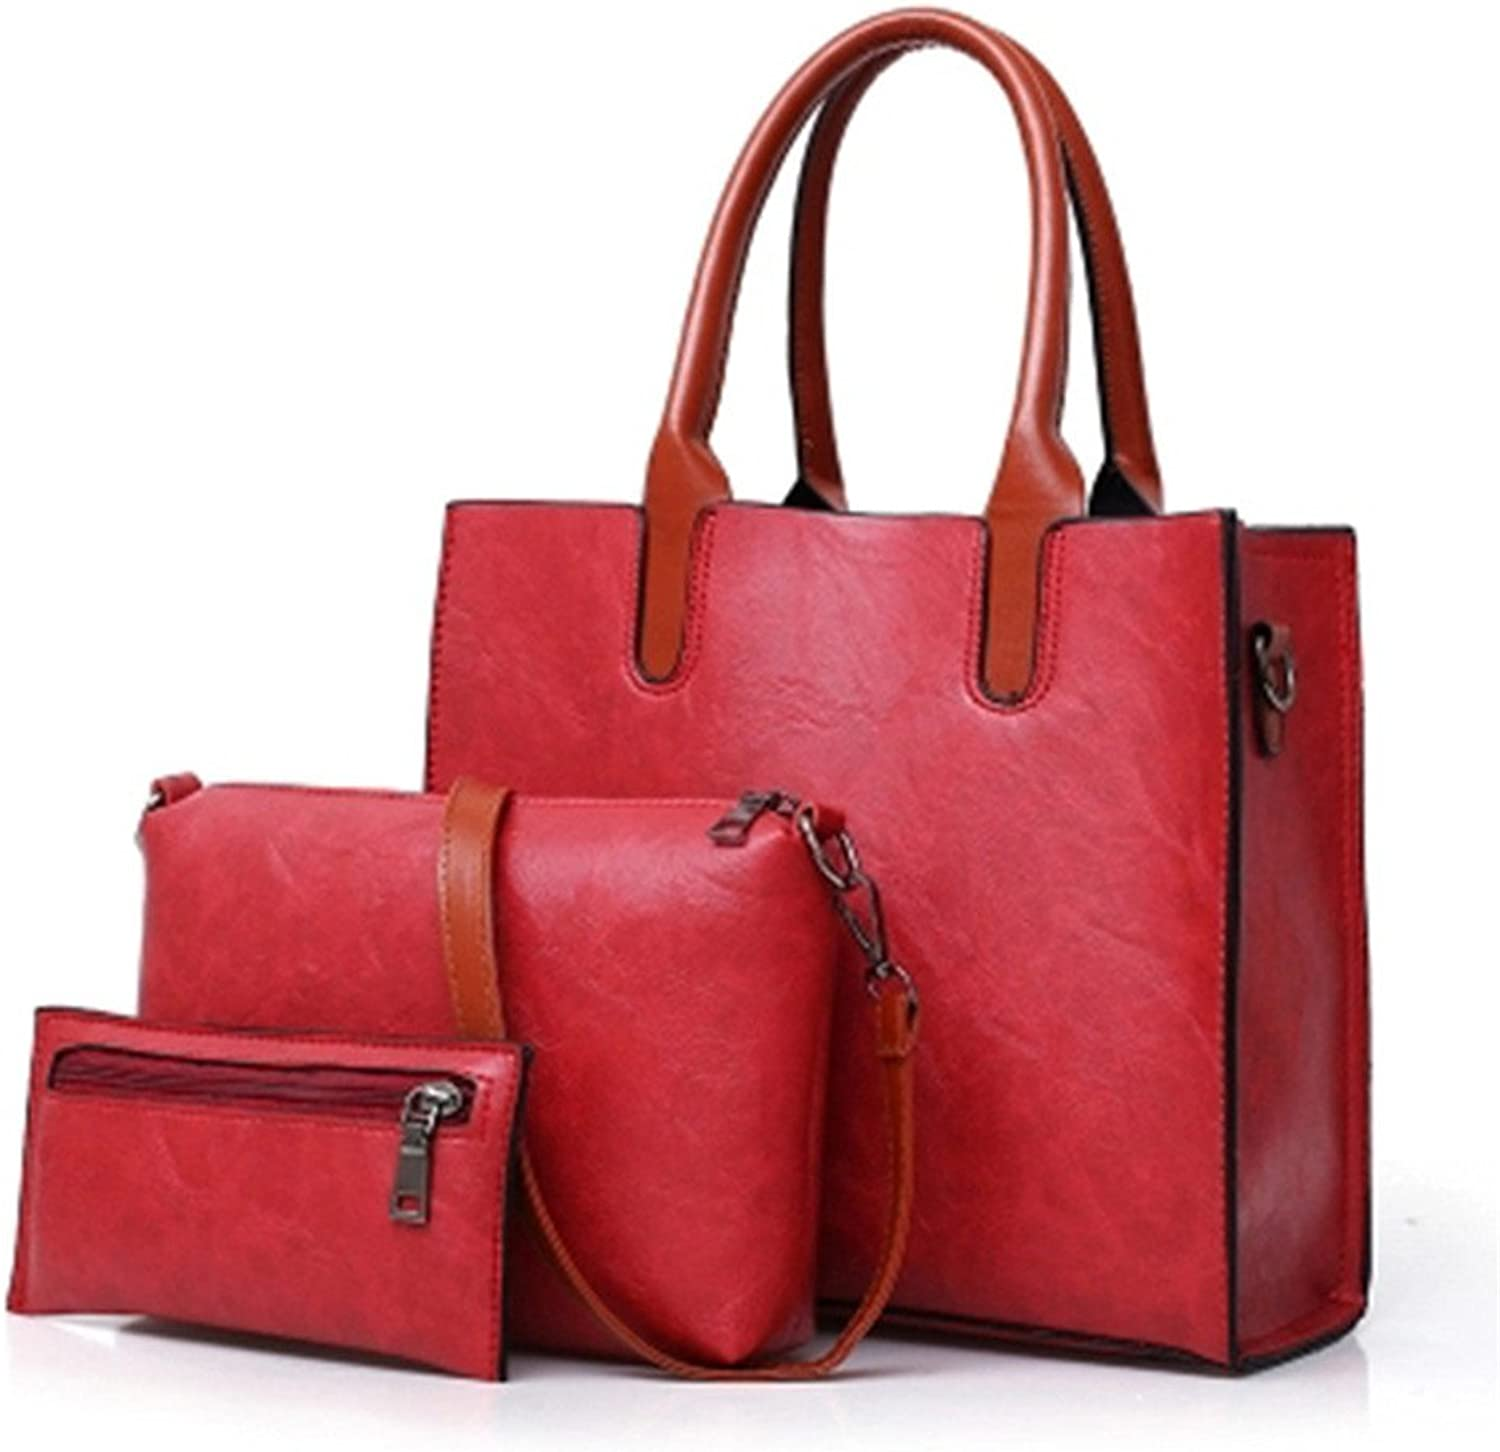 275c74632f9ca Meaeo Meaeo Meaeo New Fashionable Handbag Woman Bag Mother Bag ...